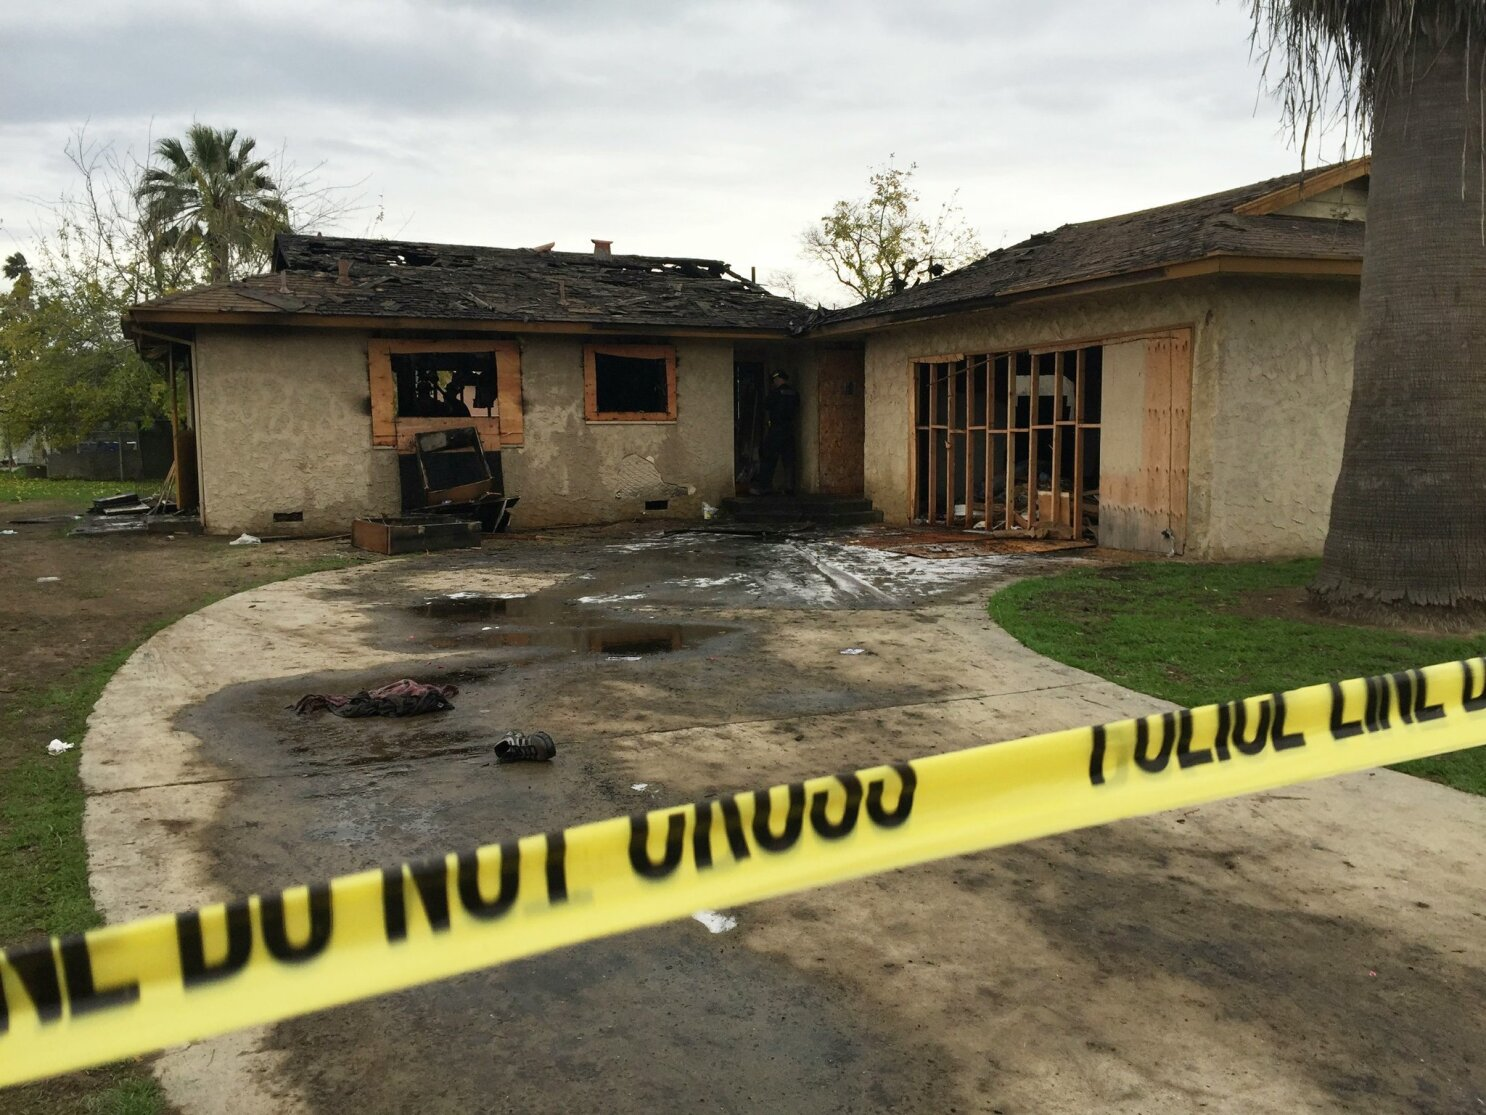 5 people die in abandoned house fire in Fresno, California - The San